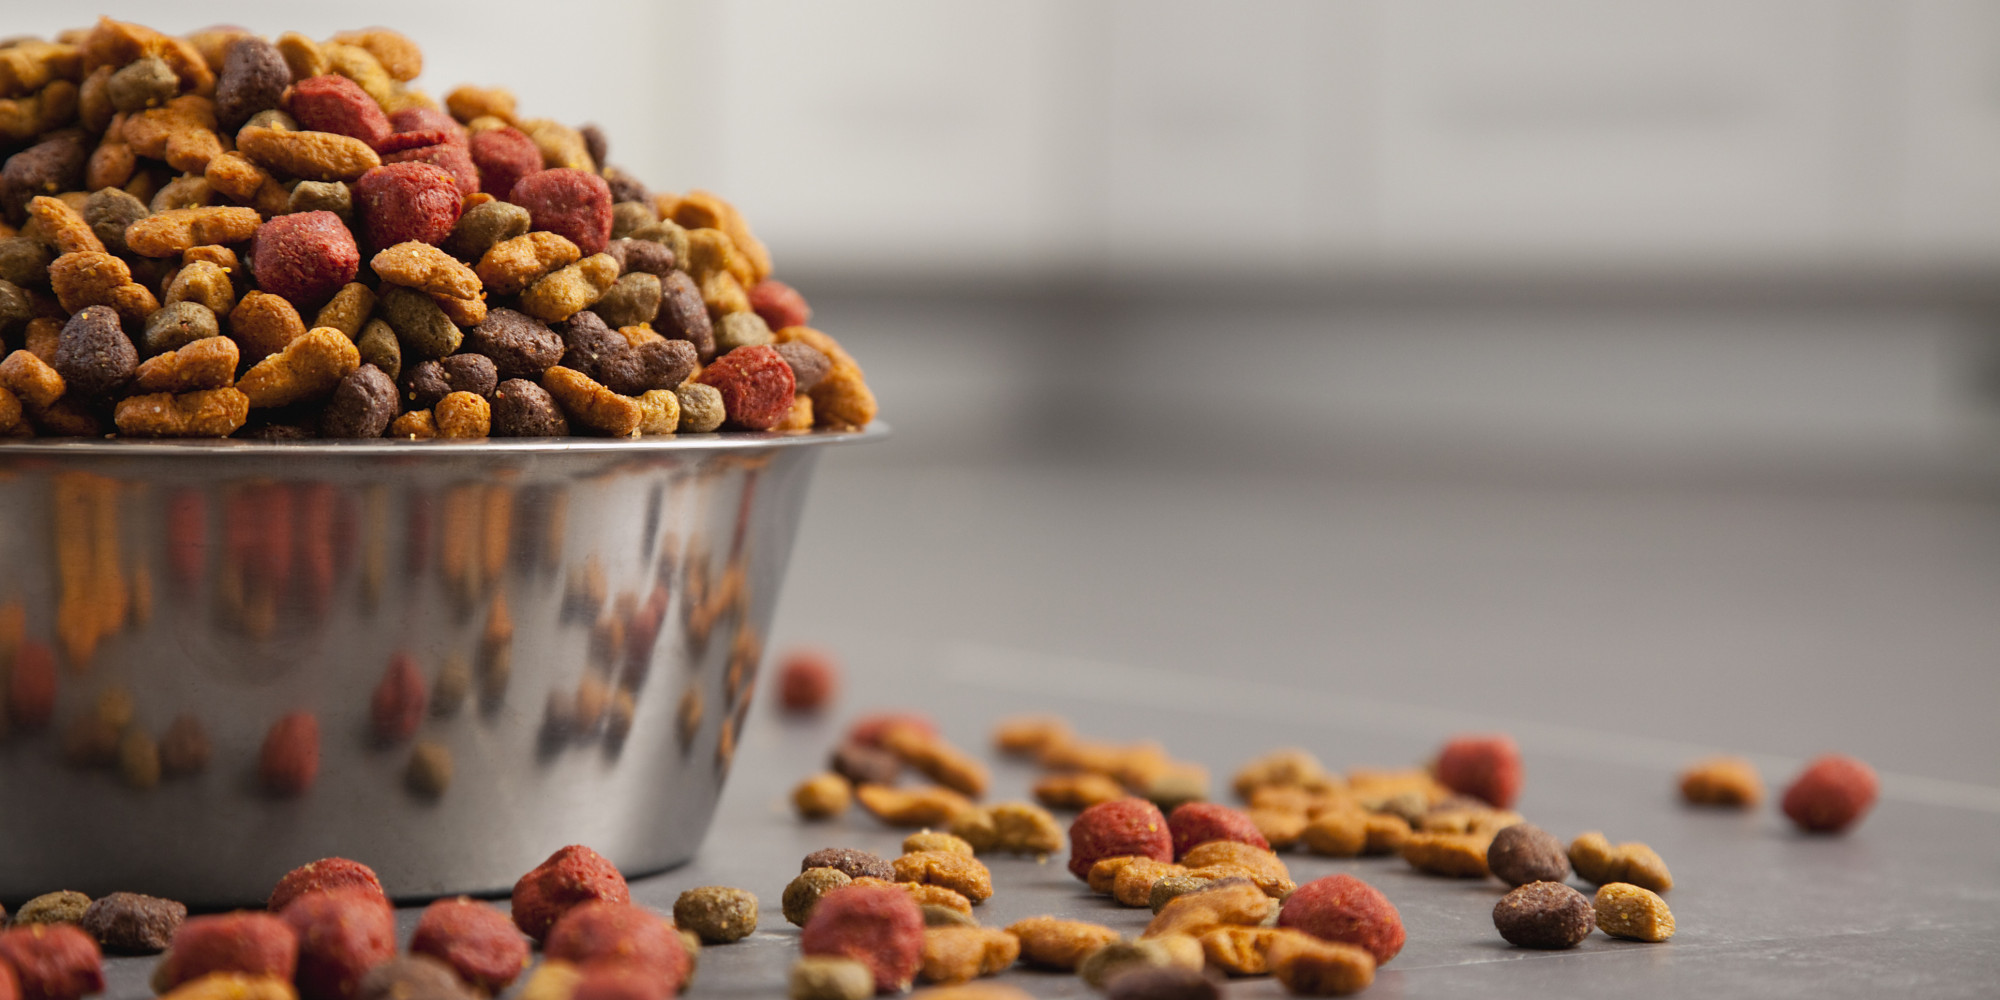 Changes Ahead For The Pet Food Industry